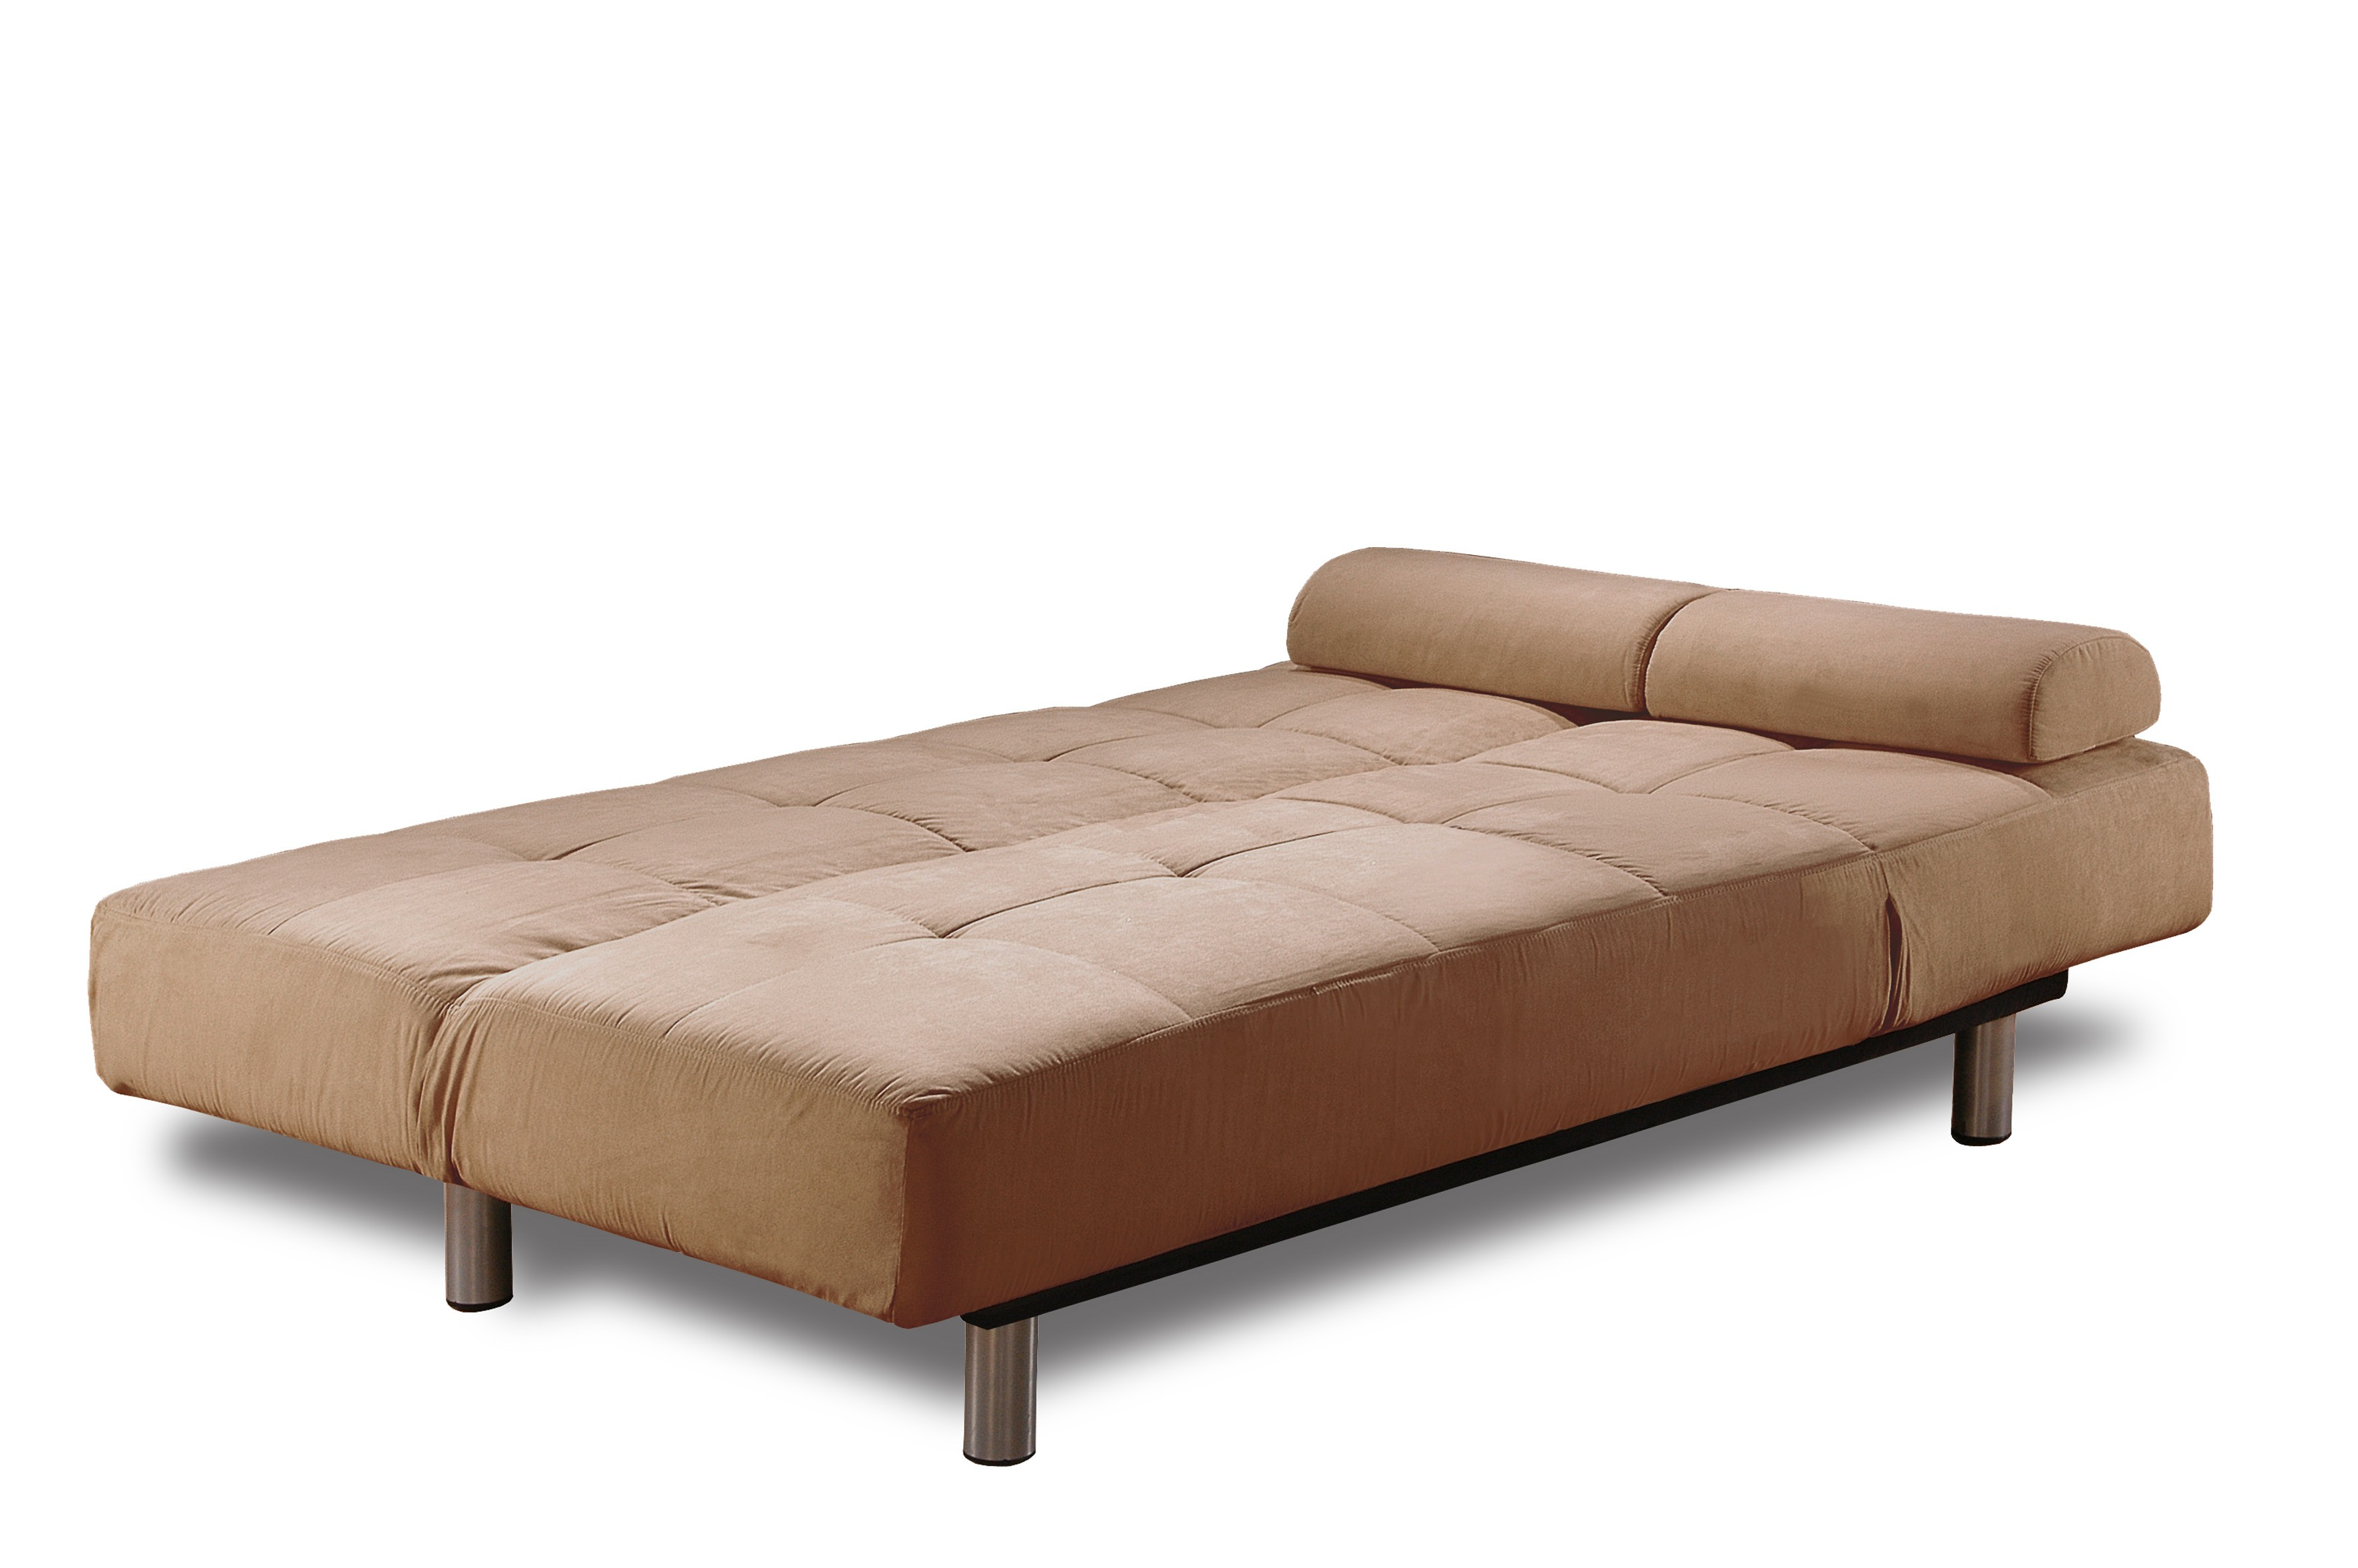 sectional sleeper sofa bobs photo - 3